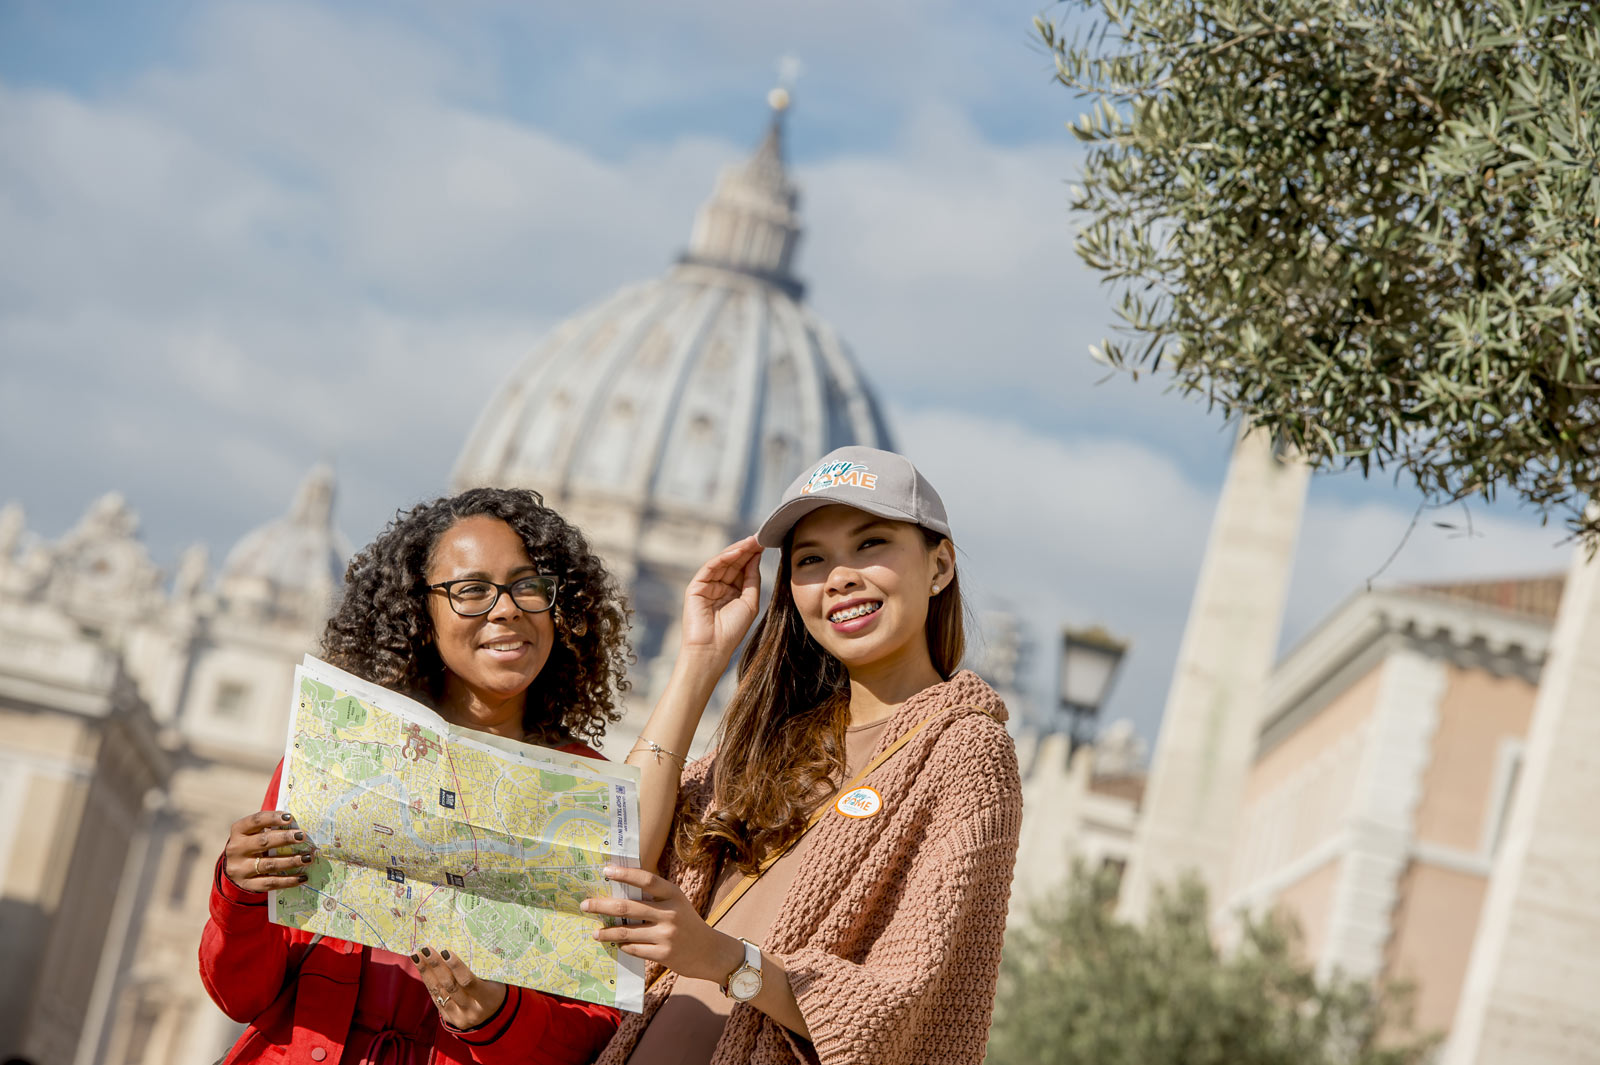 Skip-the-line and have more time to tour one of the most beloved places to visit in Rome and around the world - the Vatican Museums, Sistine Chapel, and St. Peter's Basilica.